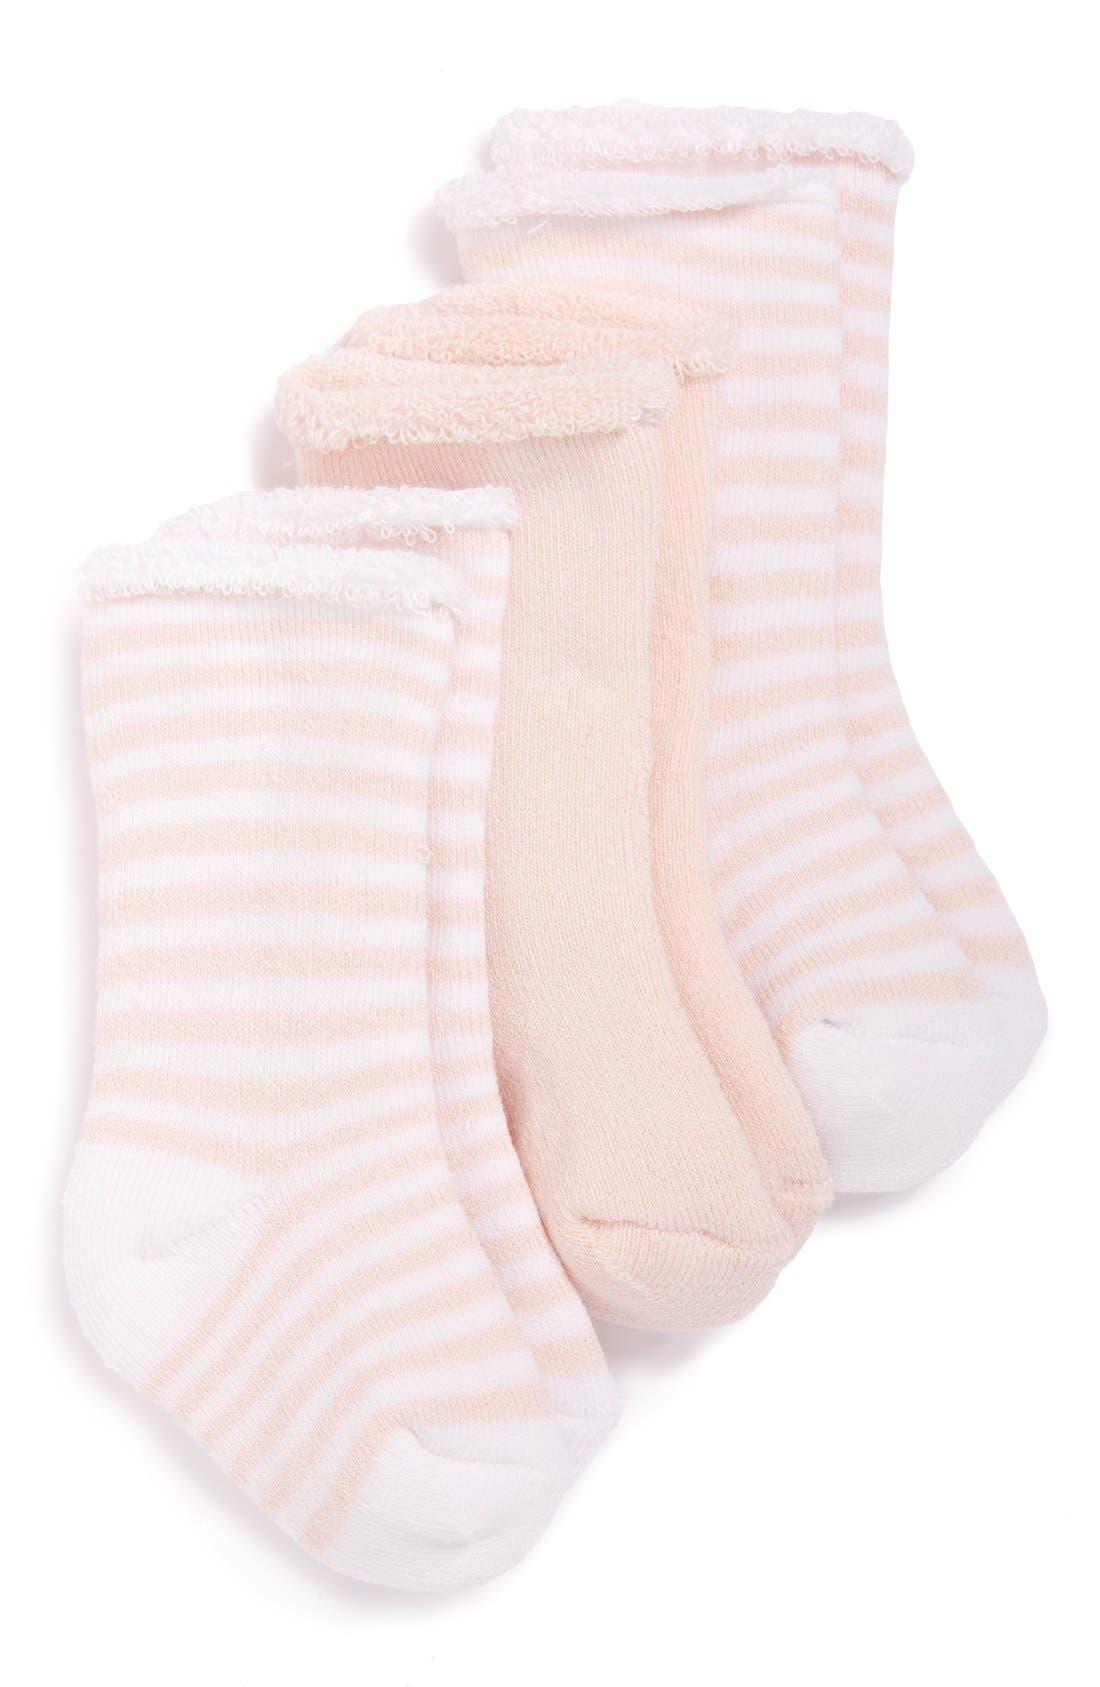 3-Pack Crew Socks,                         Main,                         color, Pink Baby Heather Pack